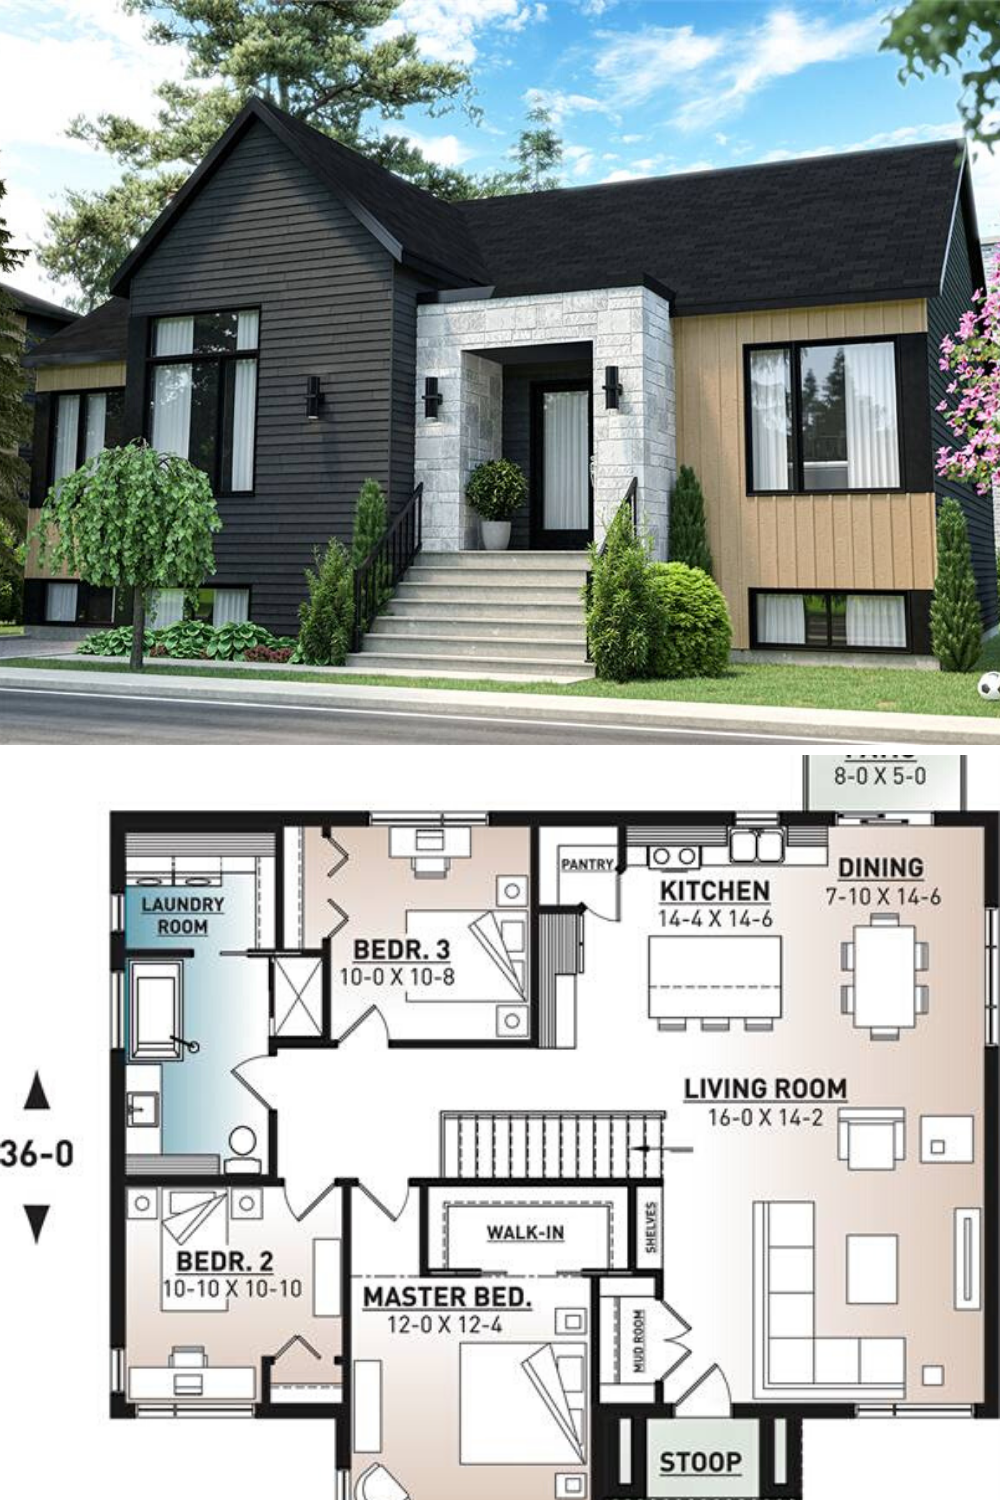 3 Bedroom Single Story Scandinavian Style Home Floor Plan Modern Style House Plans Small House Exteriors Contemporary House Plans